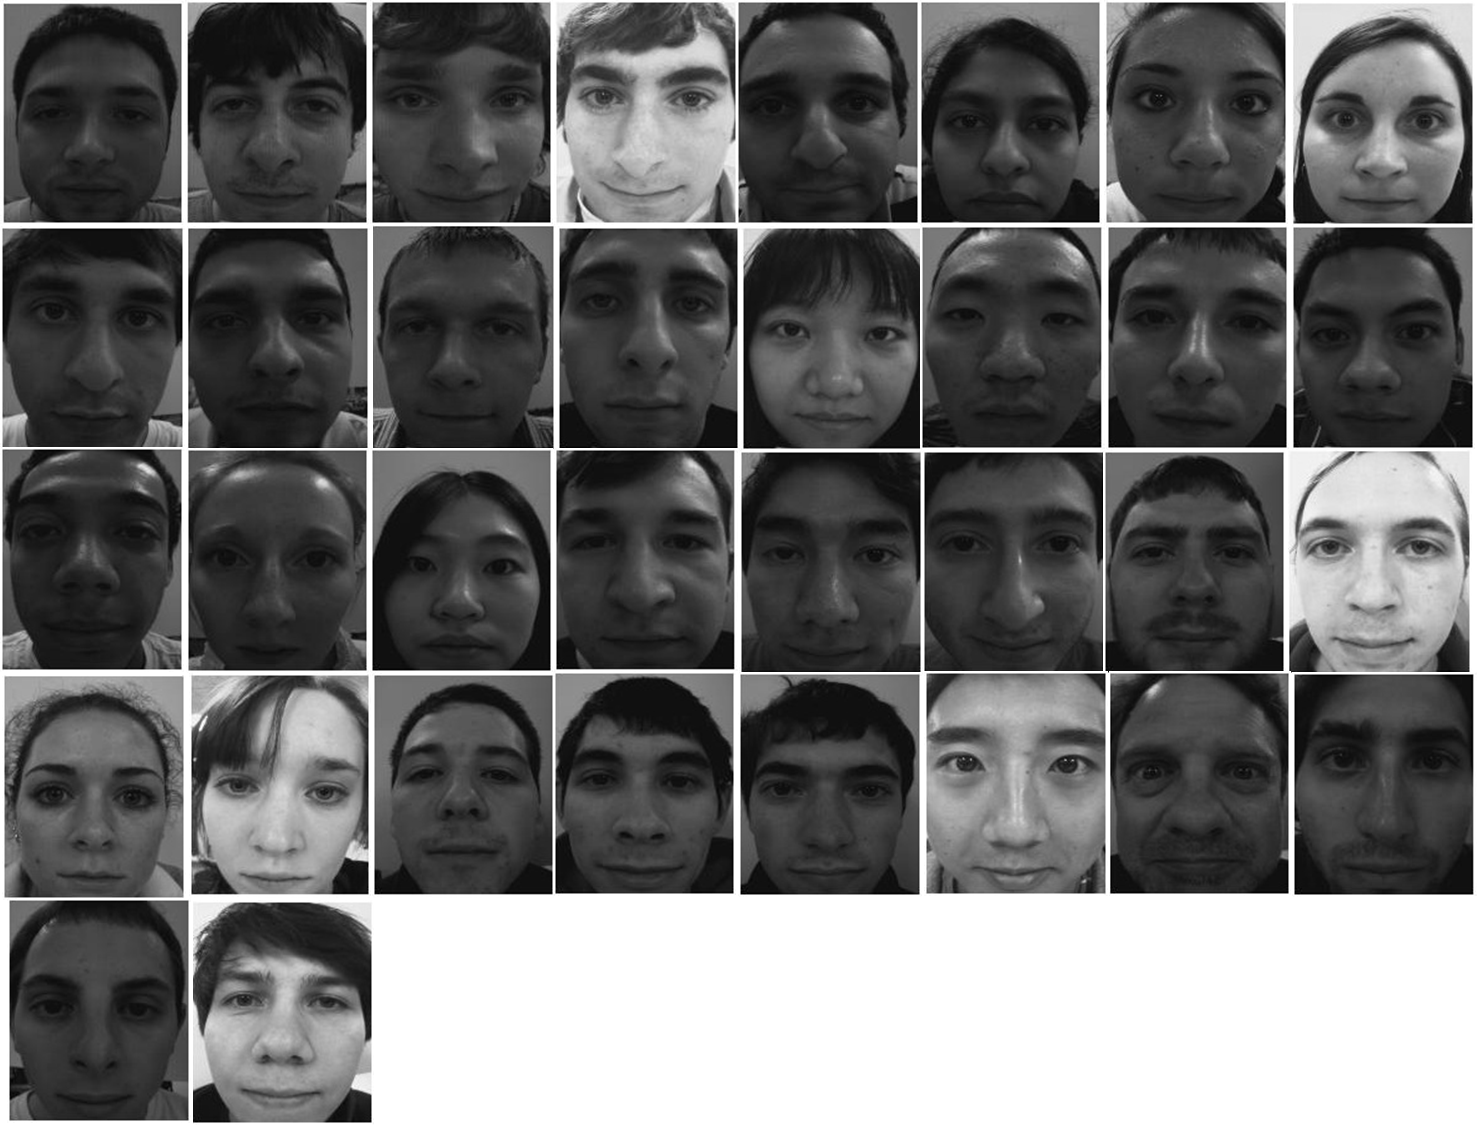 Facial recognition using AVR and eigenface ? | AVR Freaks